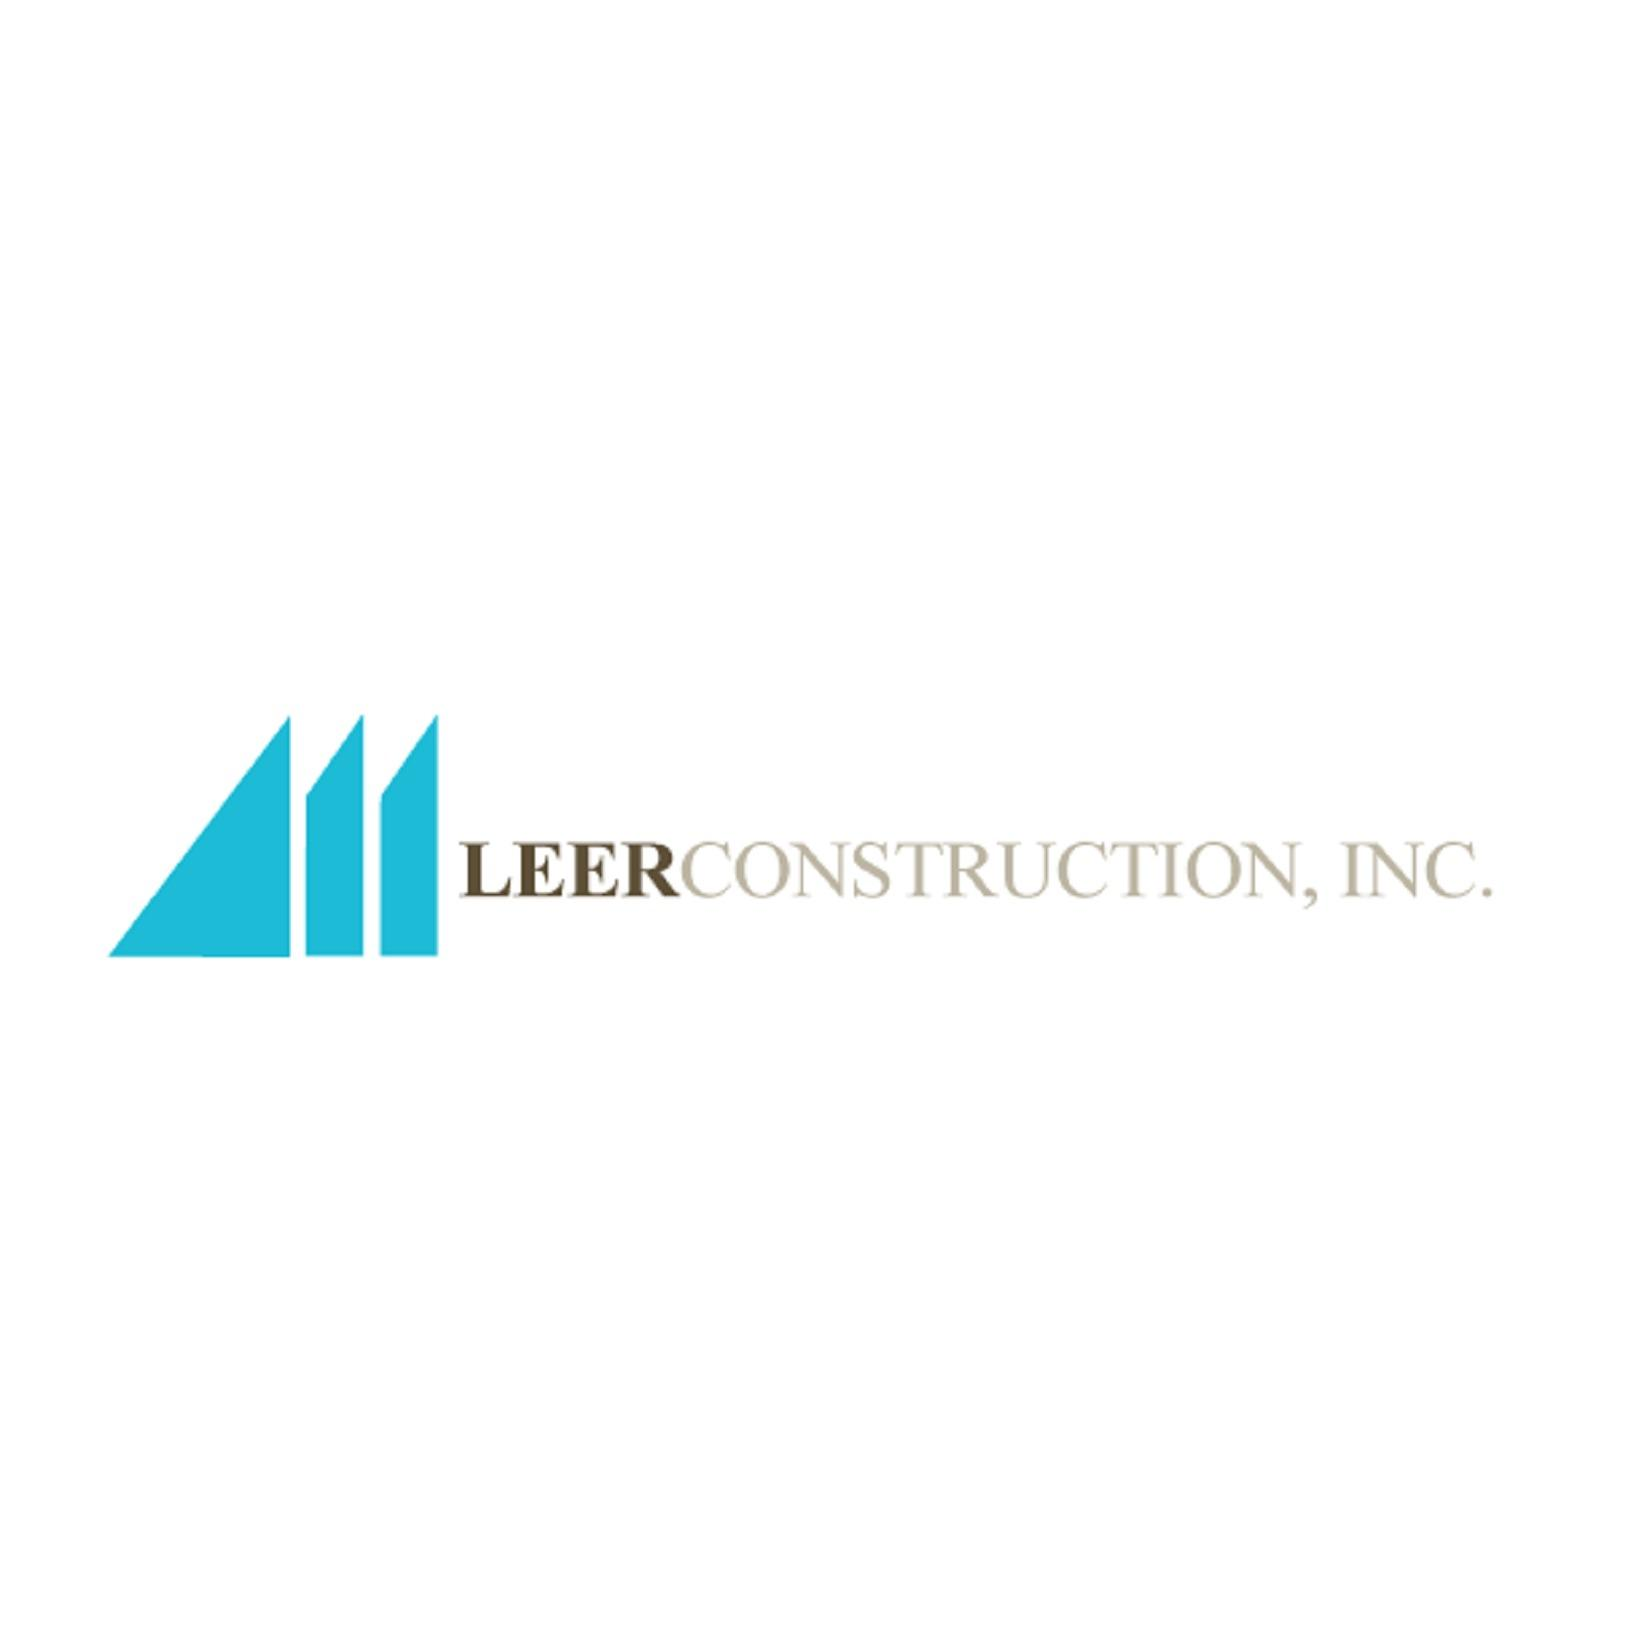 William E. Leer Construction, Inc.